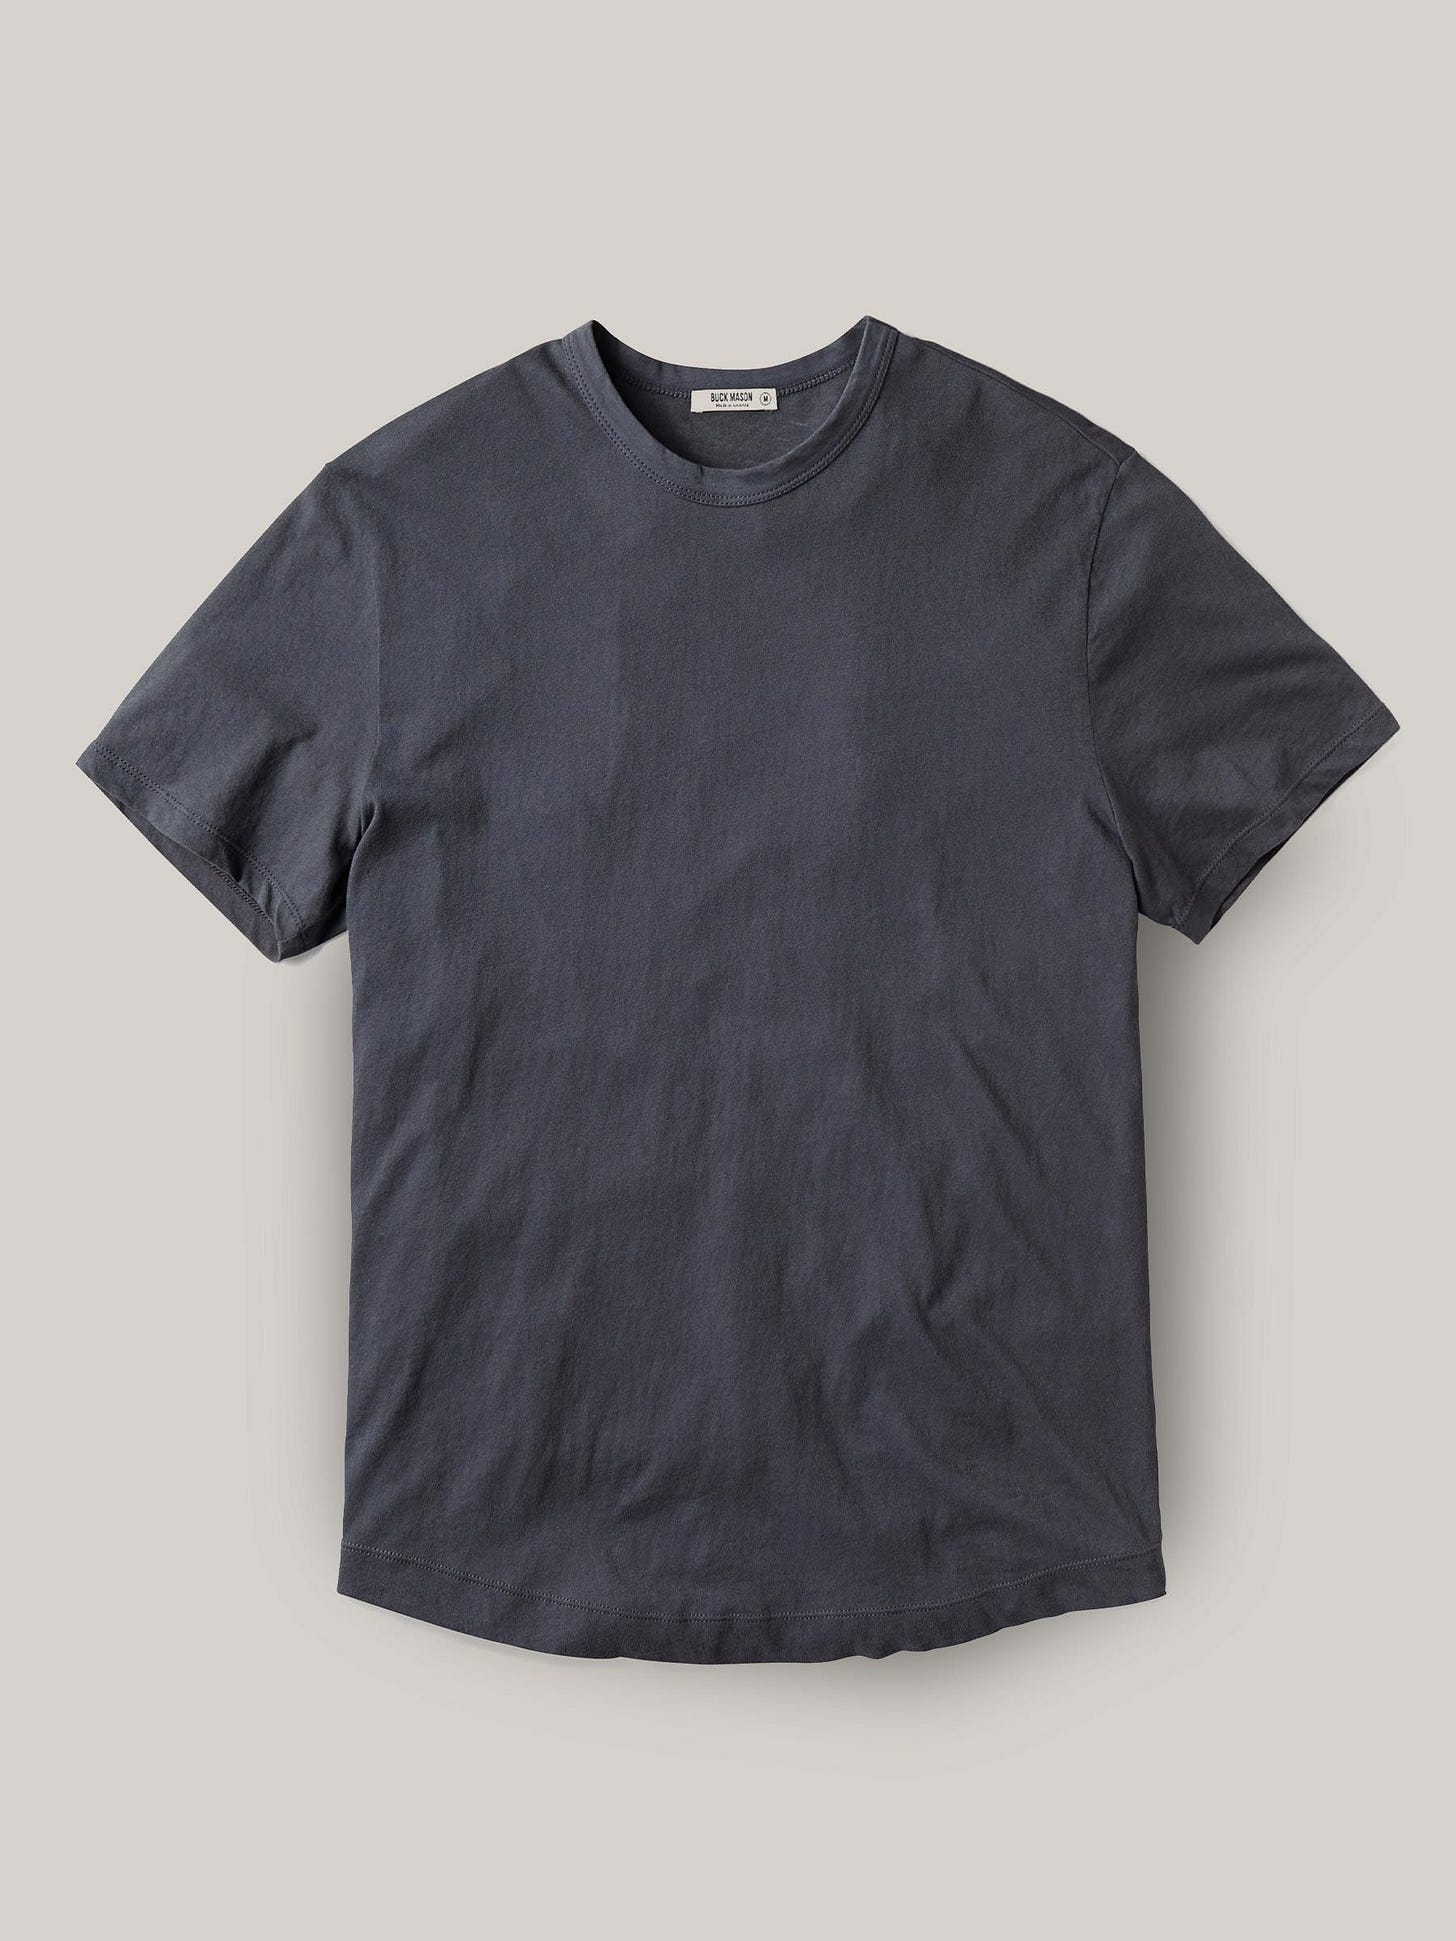 Buck Mason - Iron Costa Curved Hem Tee